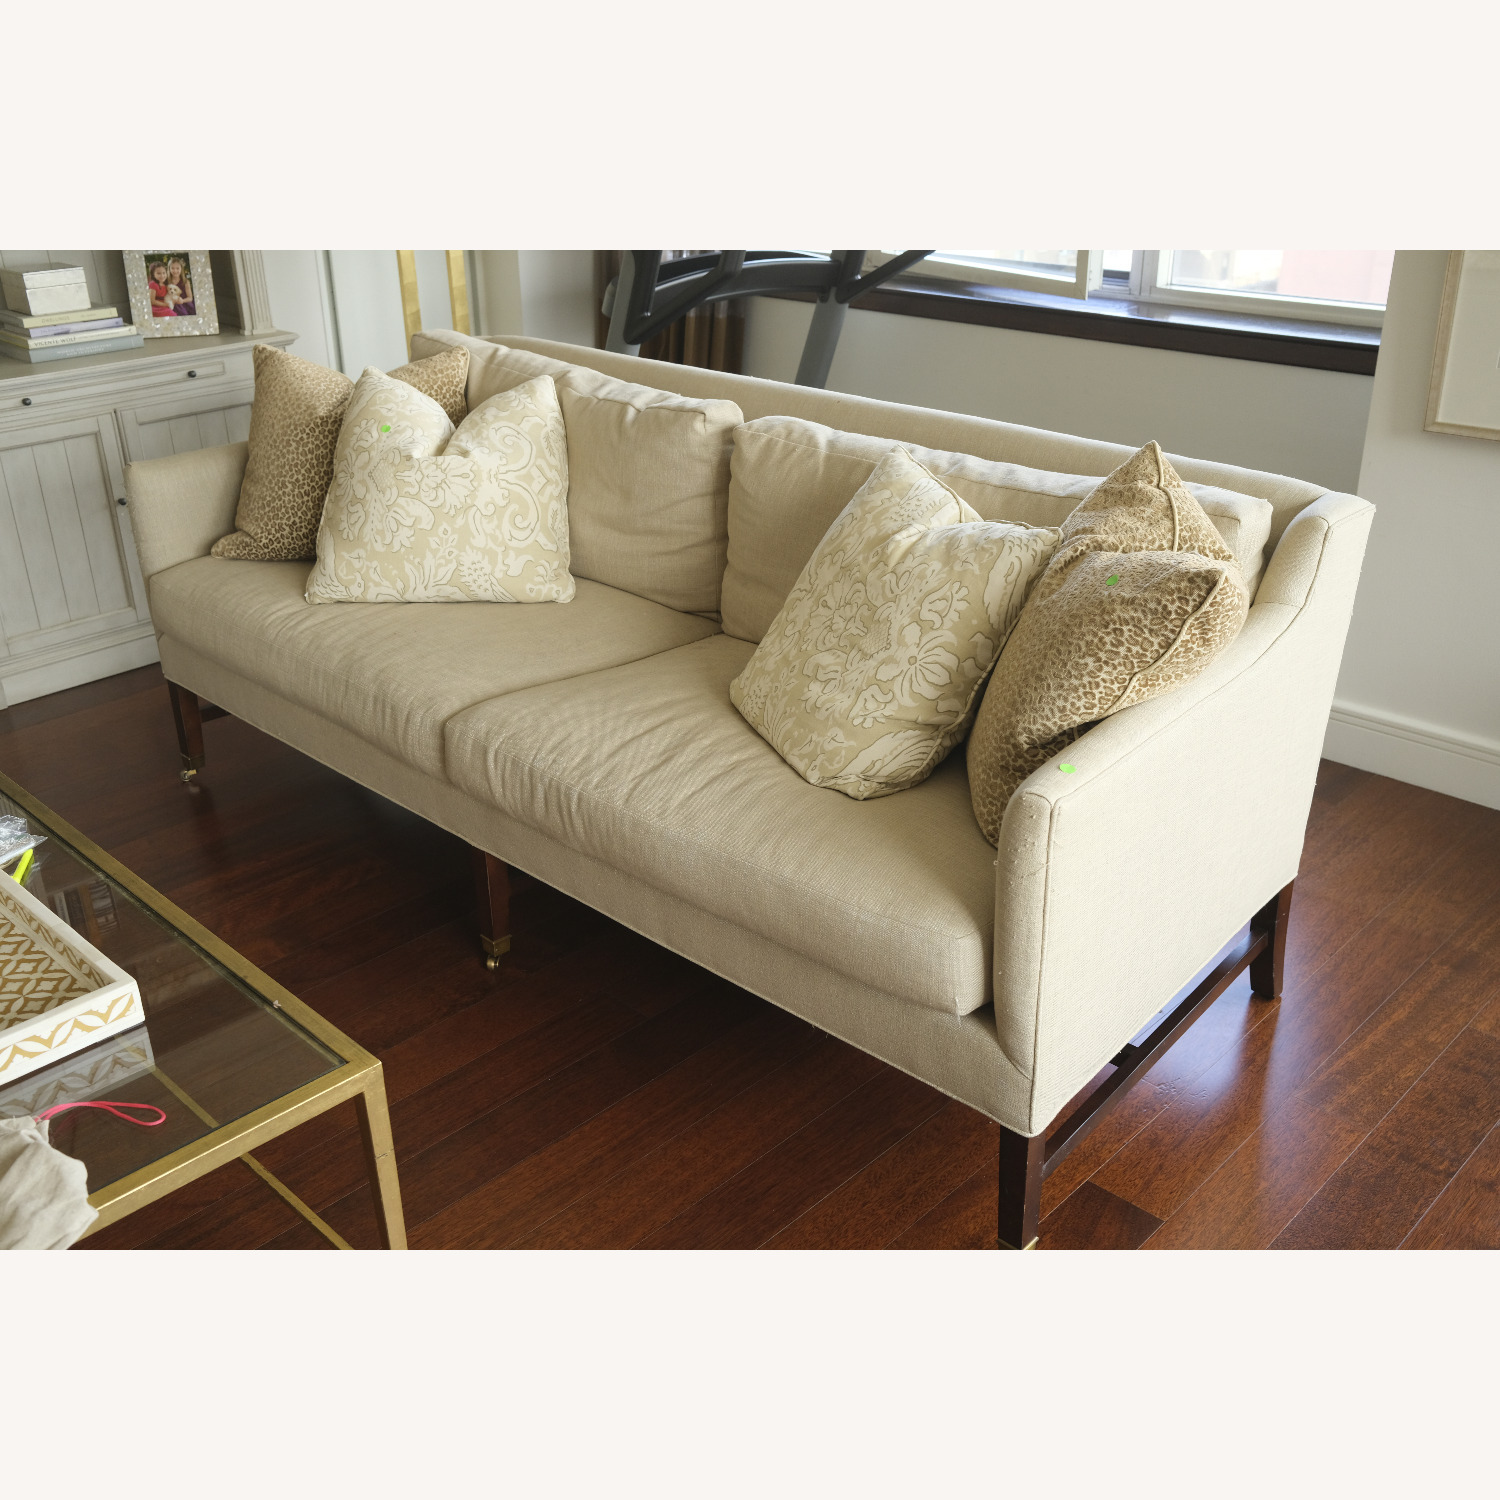 Lee Jofa Upholstered Sofas with Bronze Capped Legs - image-7